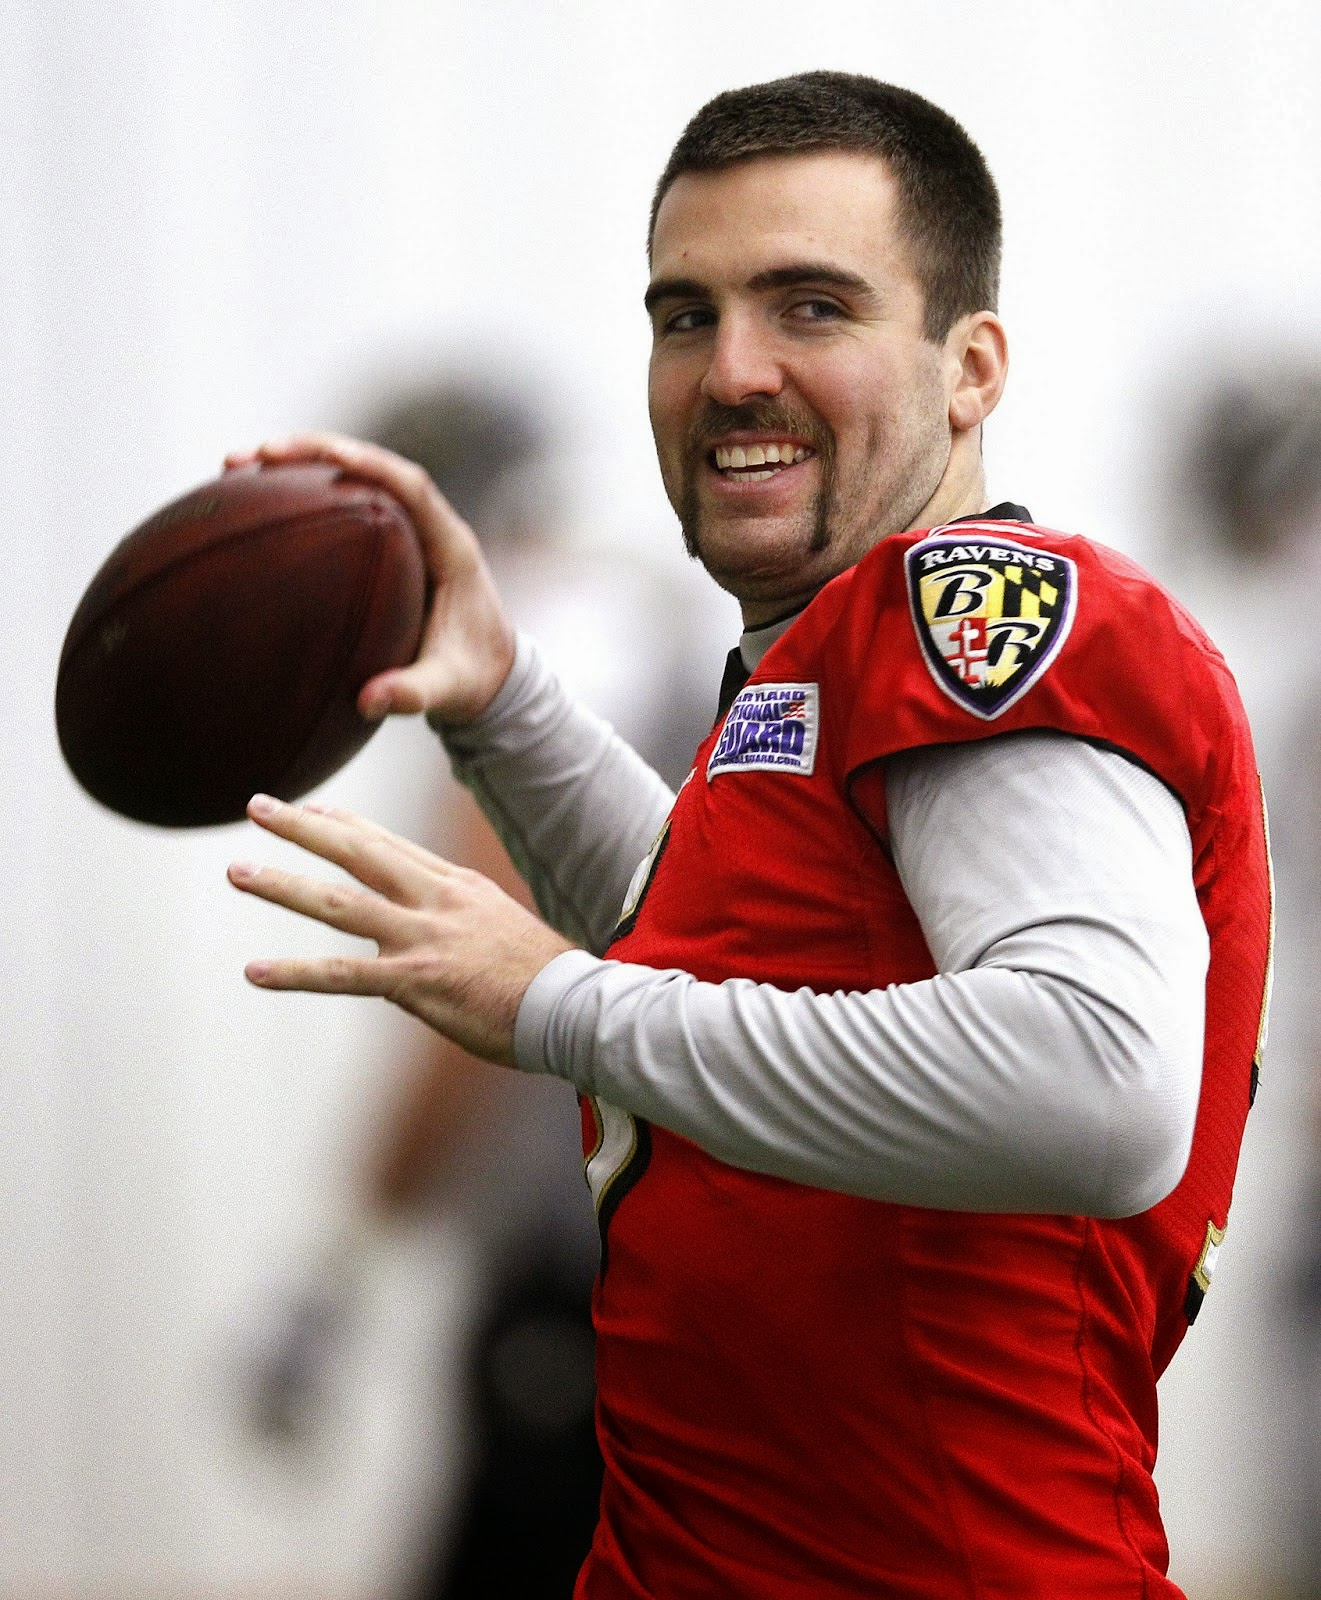 Joe Flacco with goatee